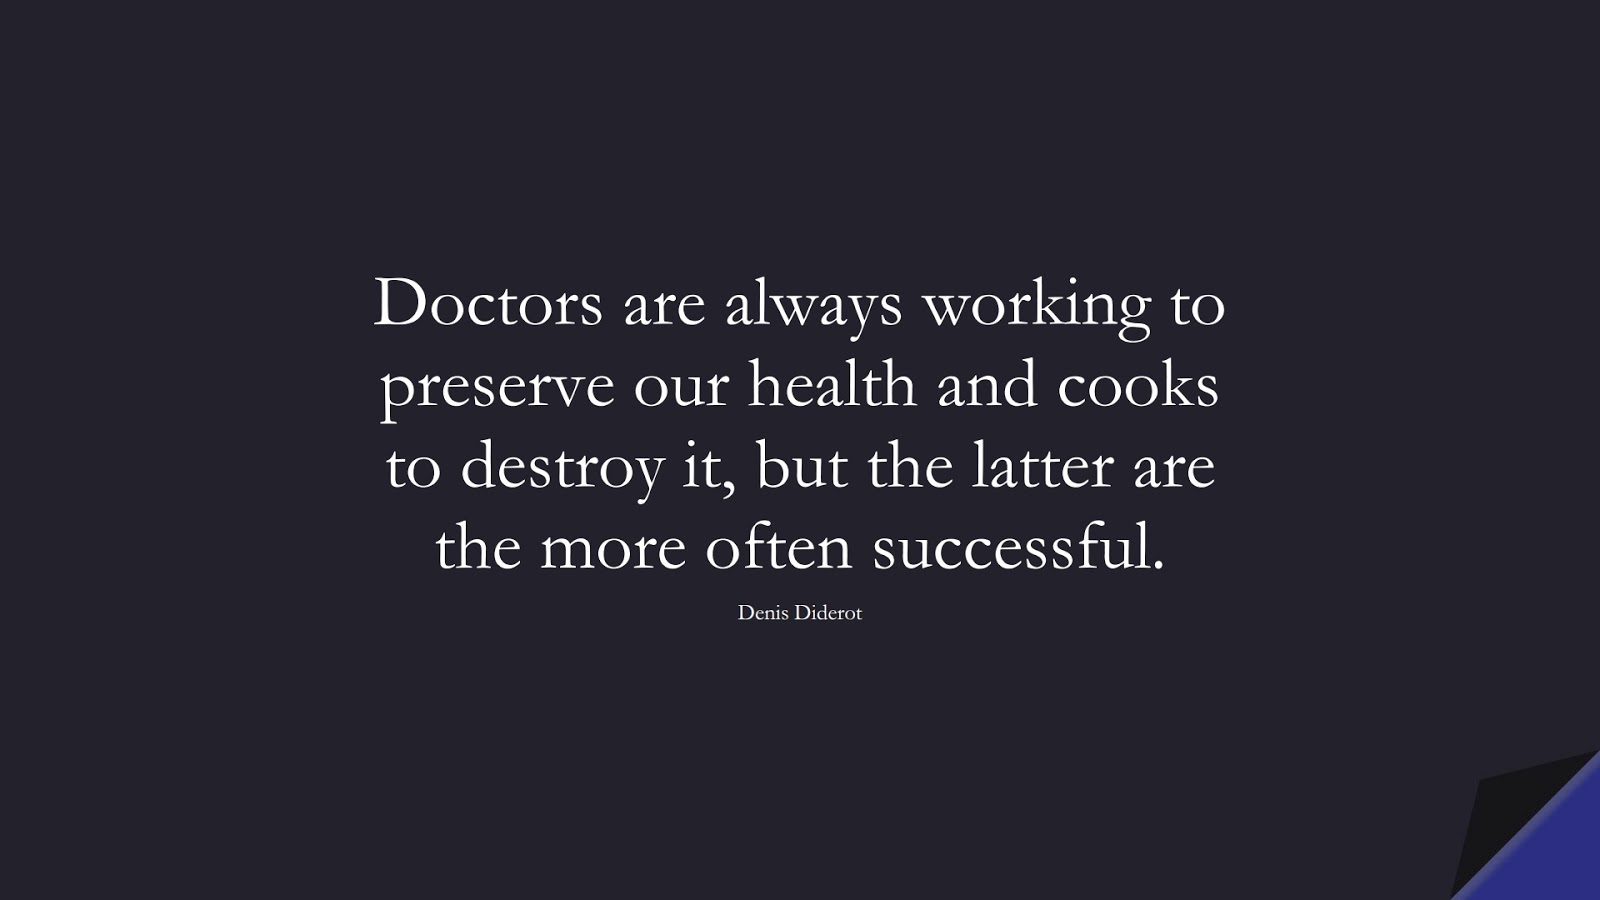 Doctors are always working to preserve our health and cooks to destroy it, but the latter are the more often successful. (Denis Diderot);  #HealthQuotes